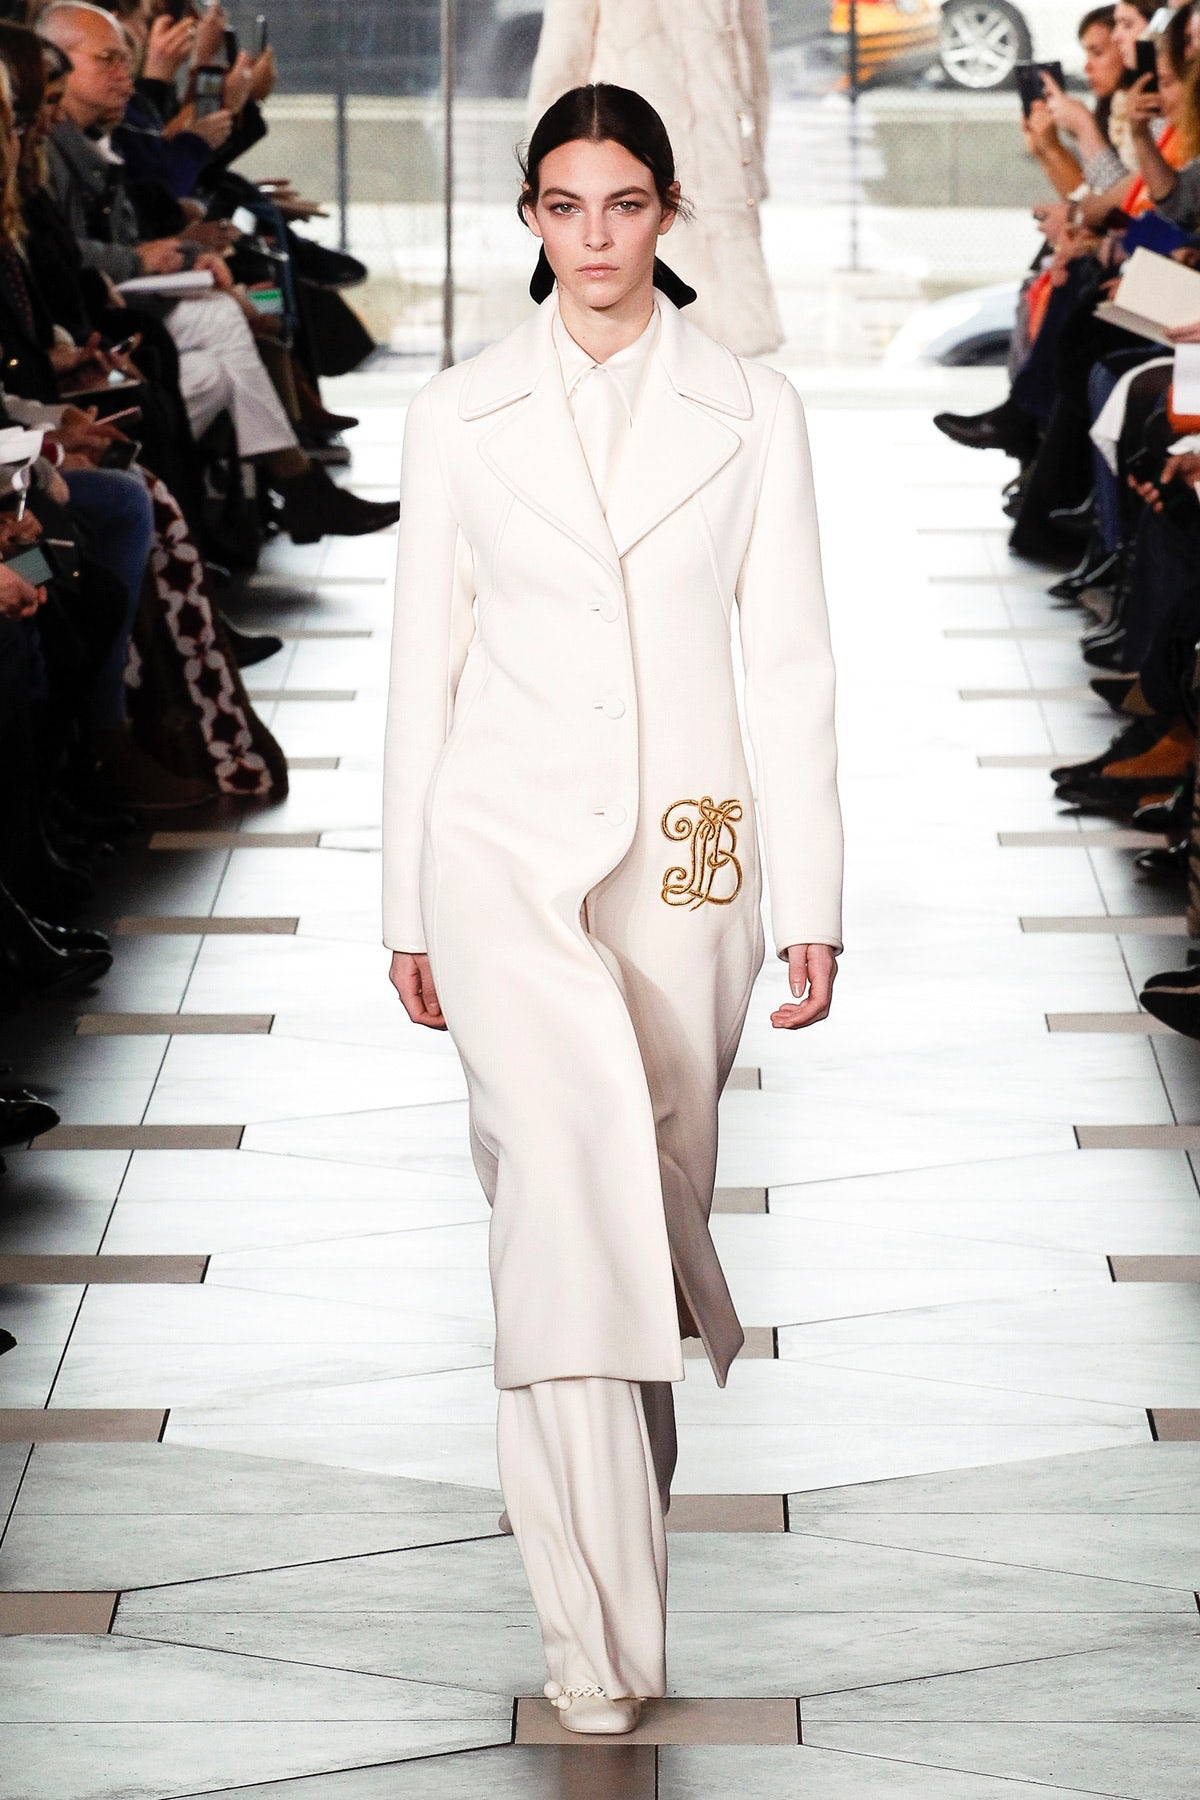 Toying With Illusion at Tory Burch